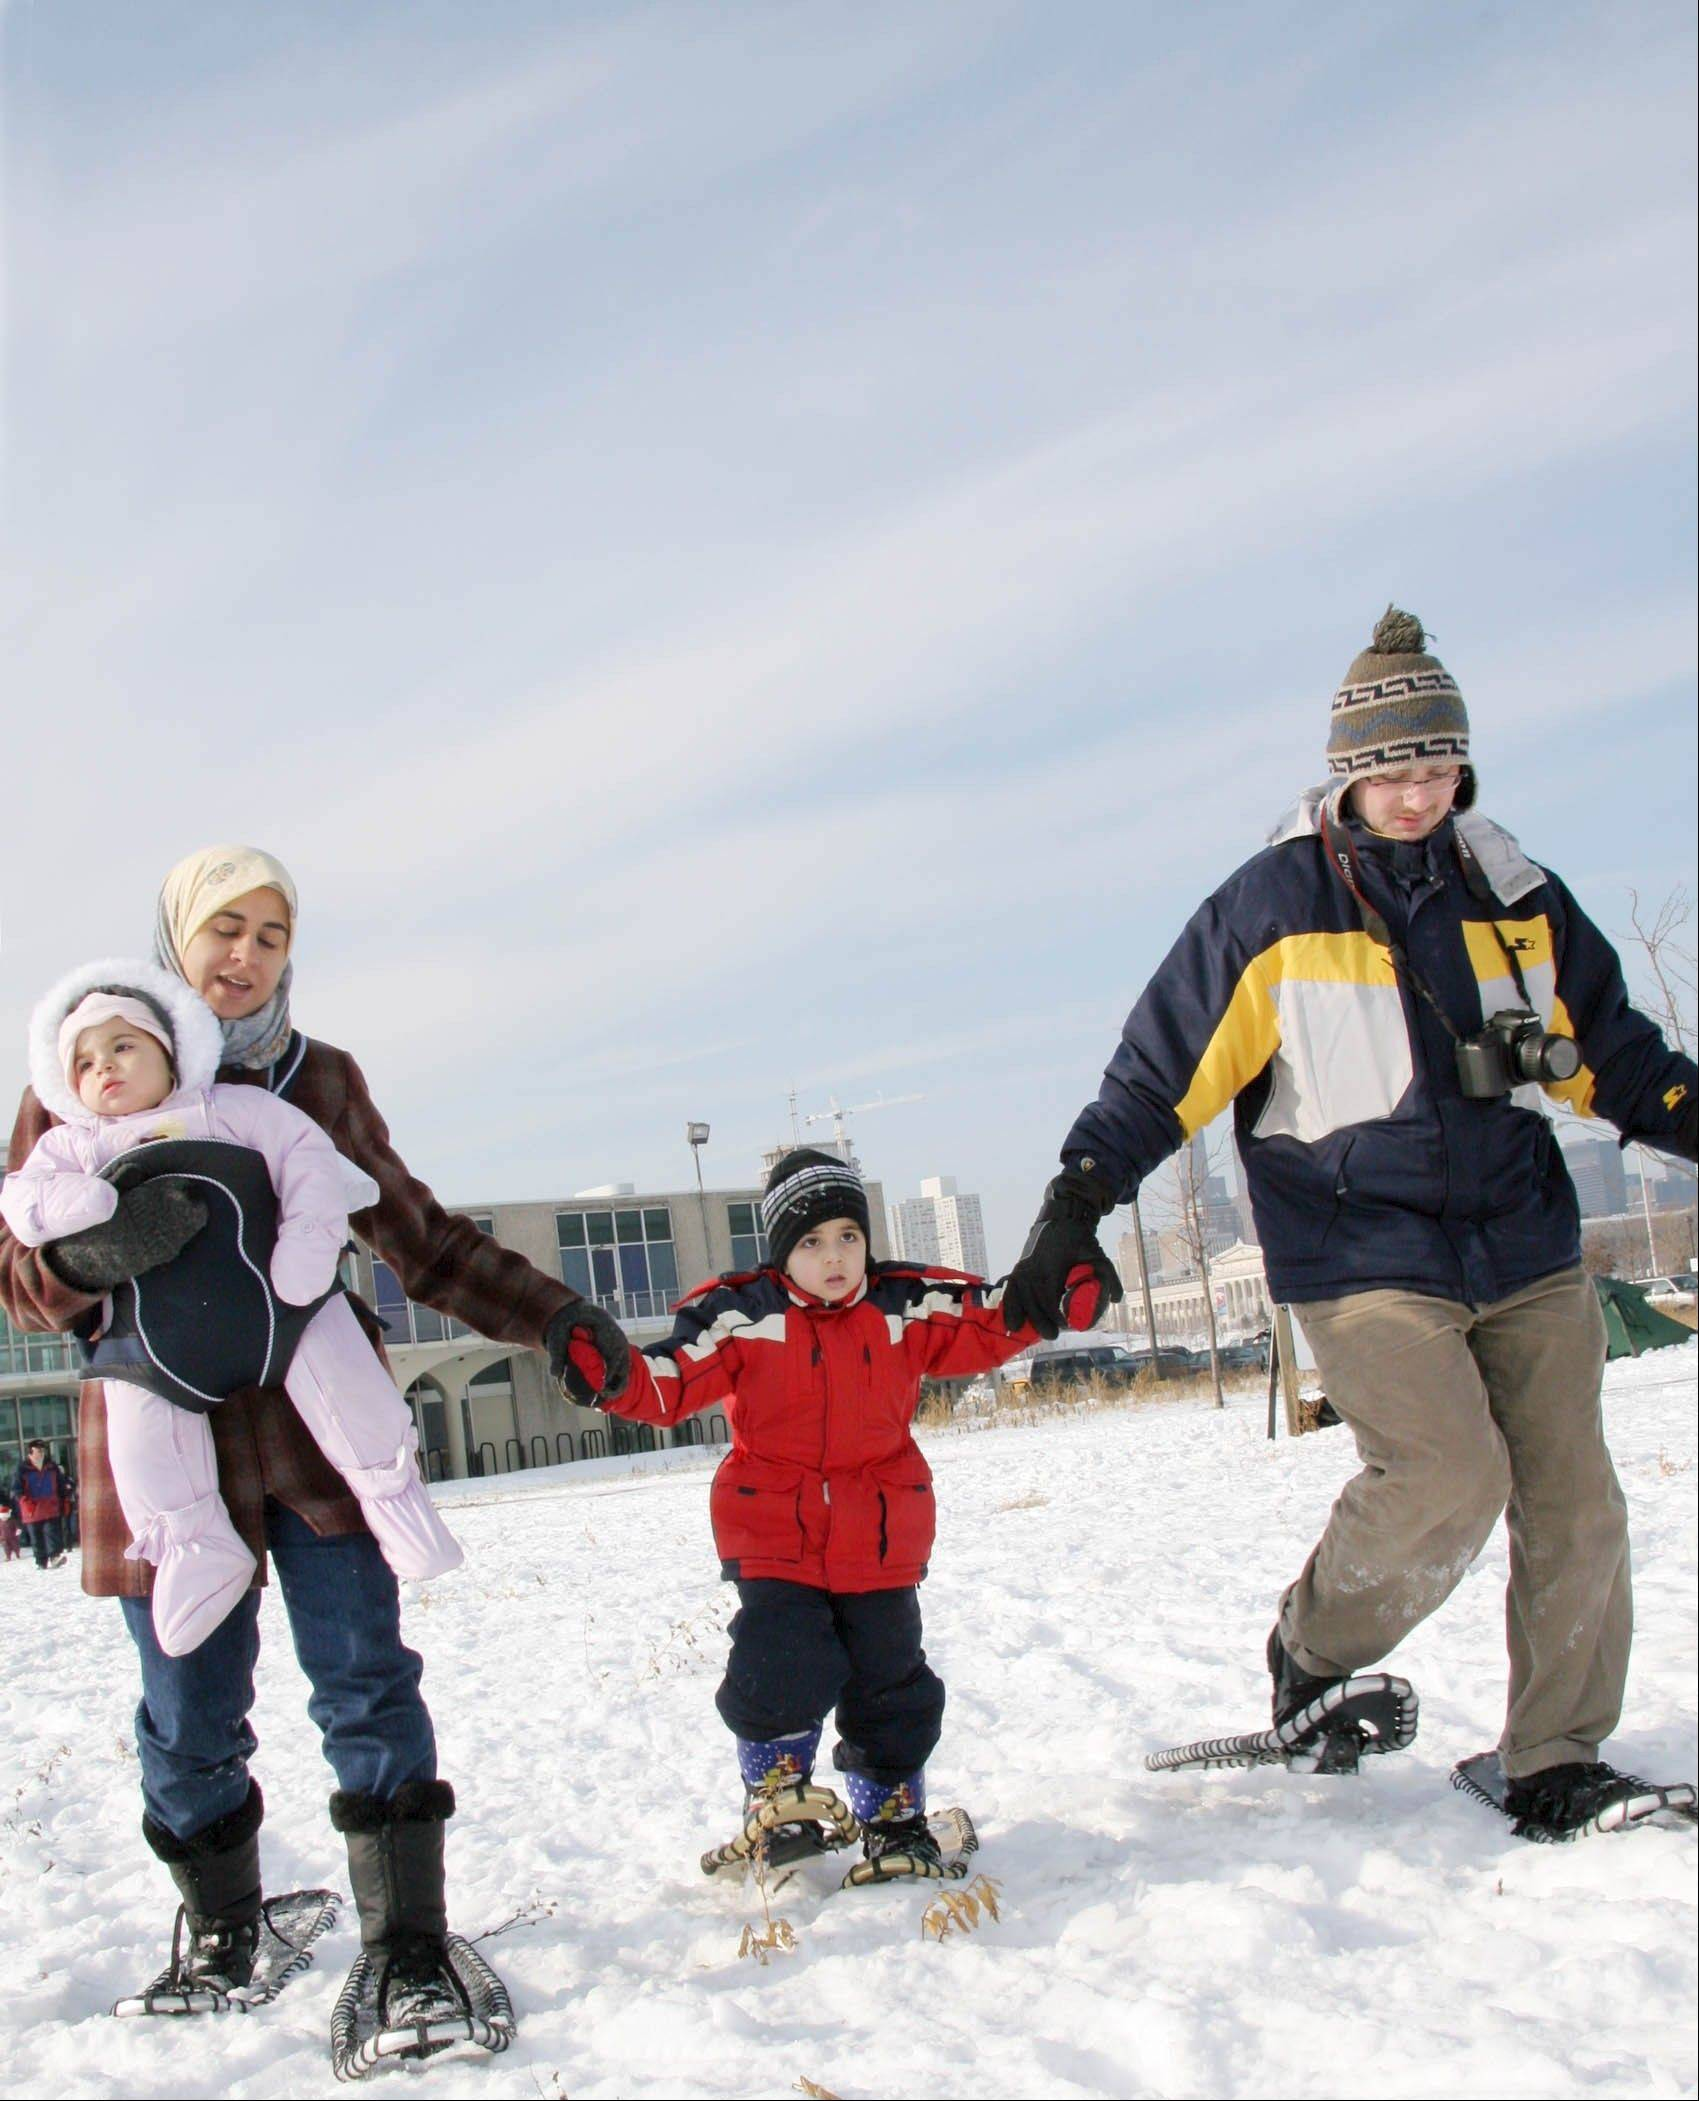 Polar Adventure Days at Northerly Island features outdoor winter fun for the whole family, Jan. 25 and Feb. 22.